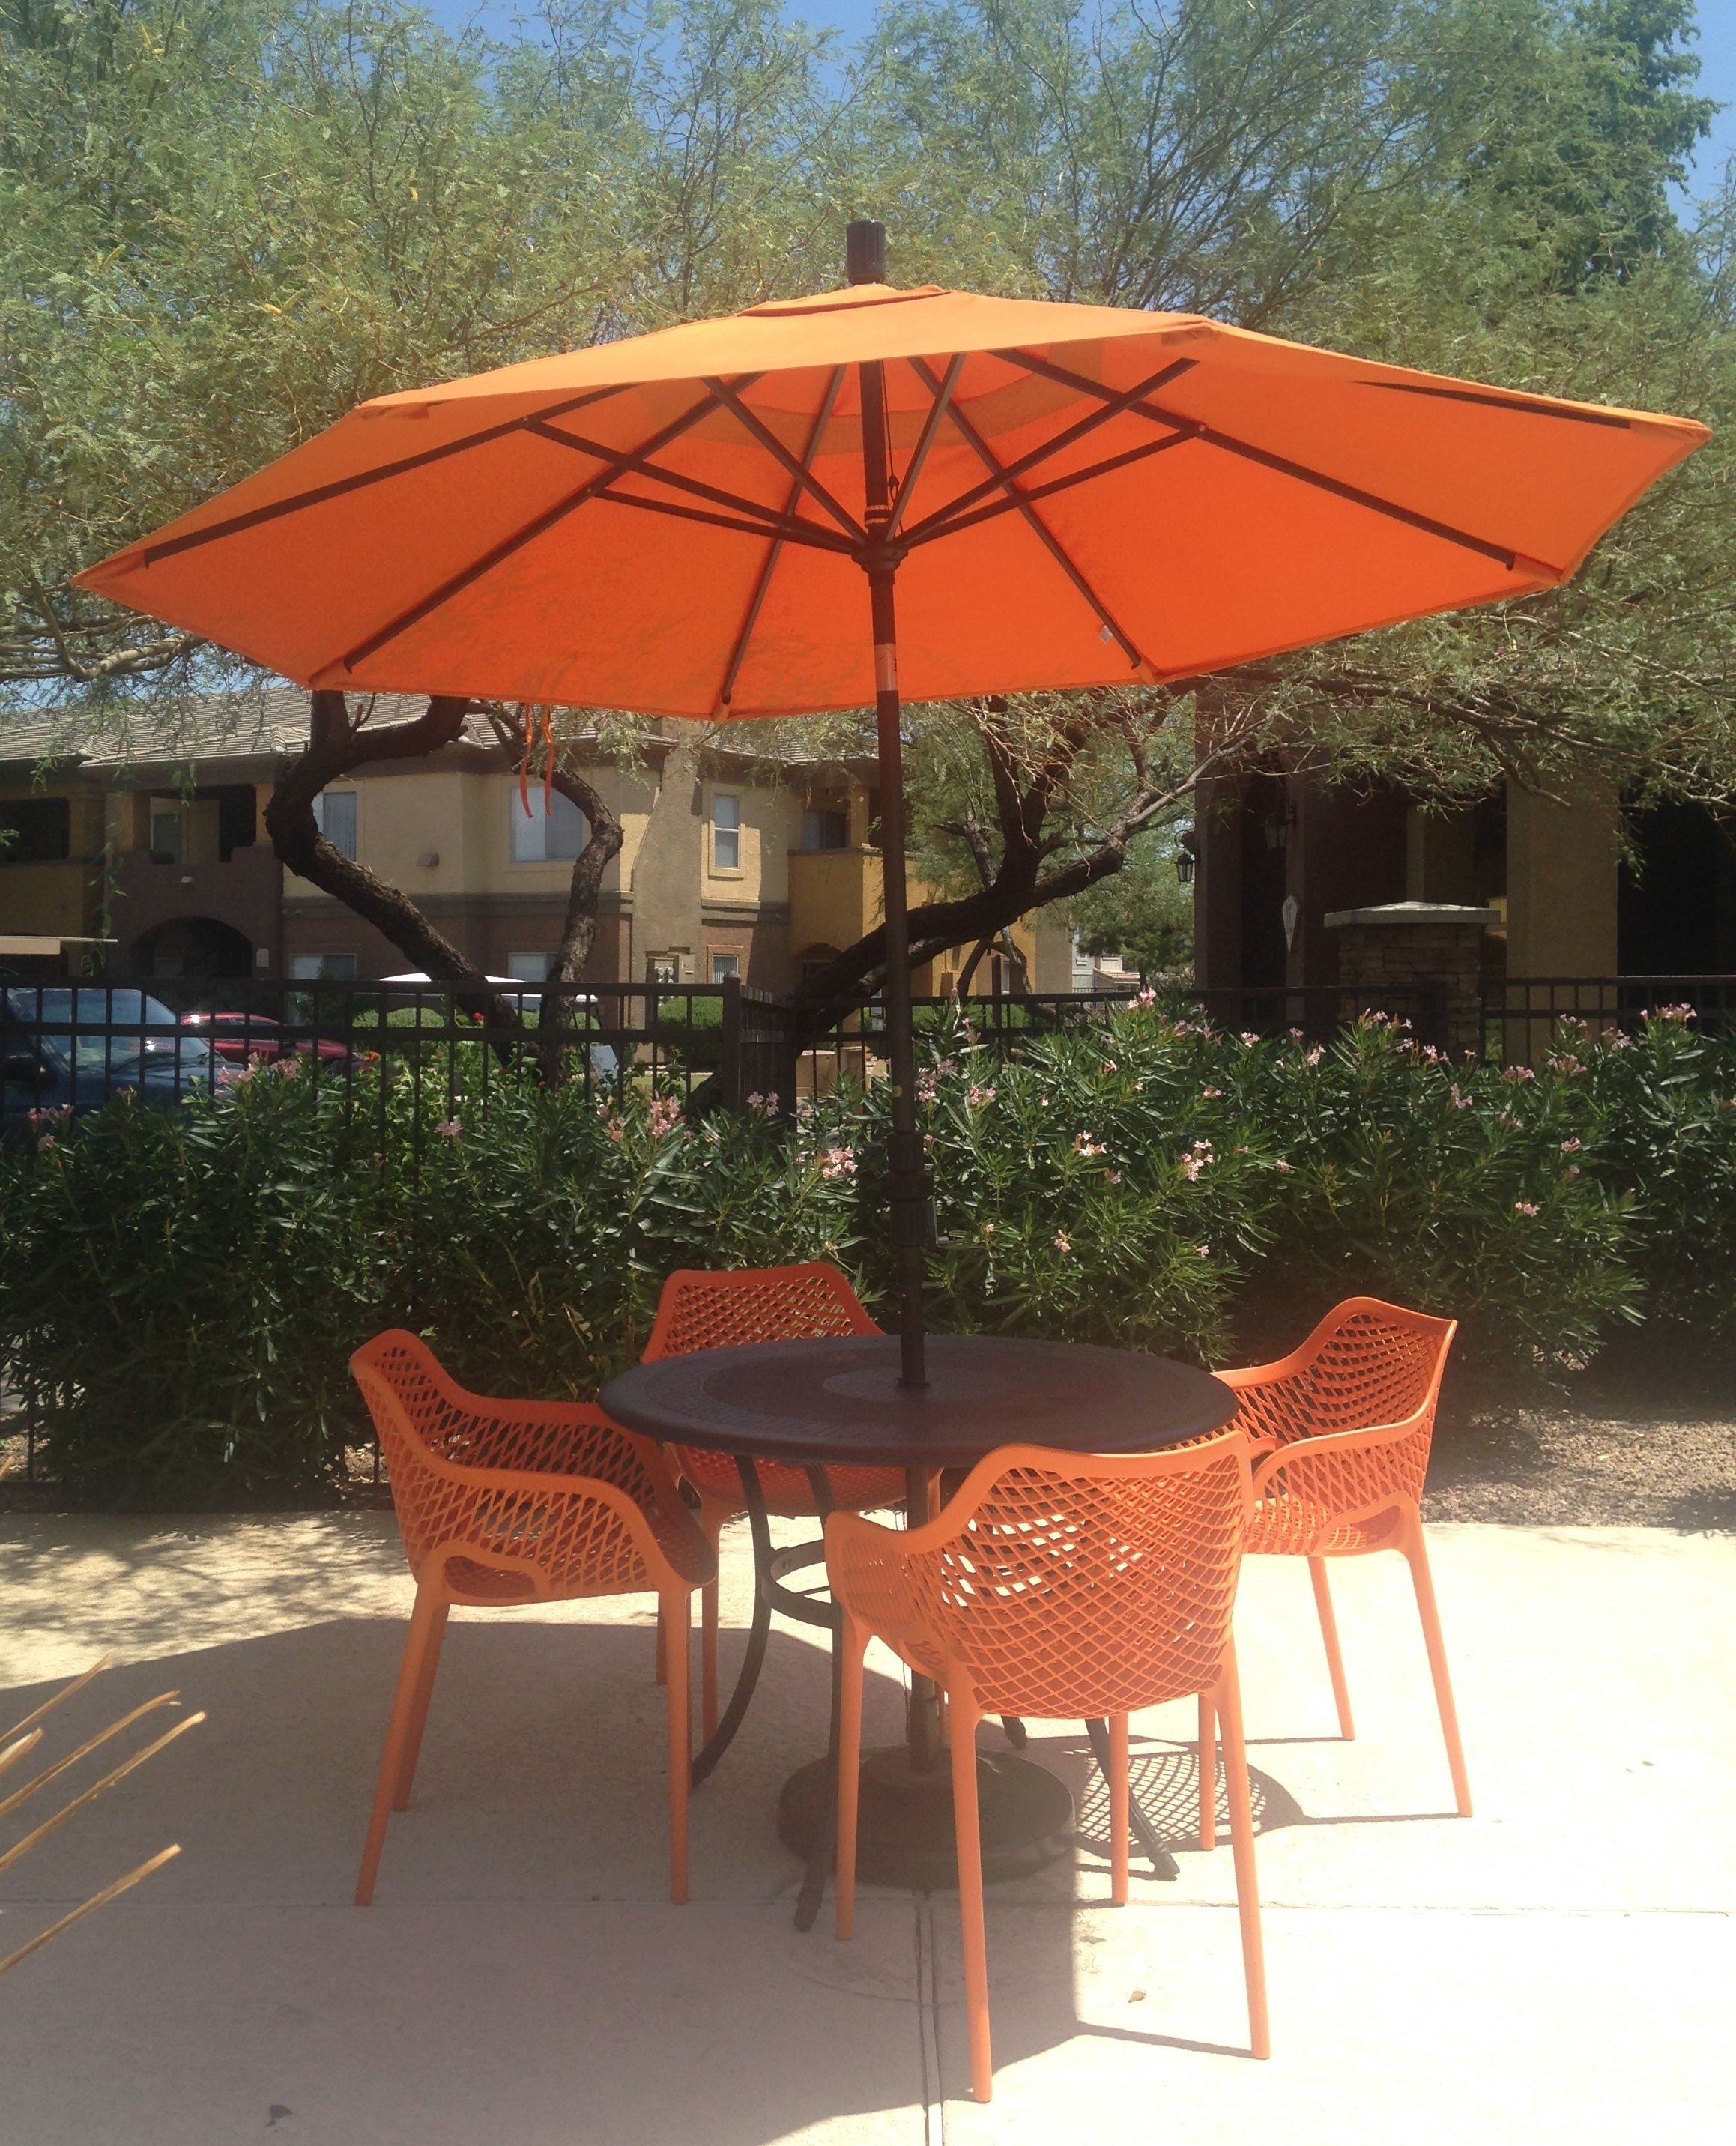 Photo Of Target Patio Umbrella Exterior Orange Target Patio Regarding Preferred Target Patio Umbrellas (View 13 of 20)